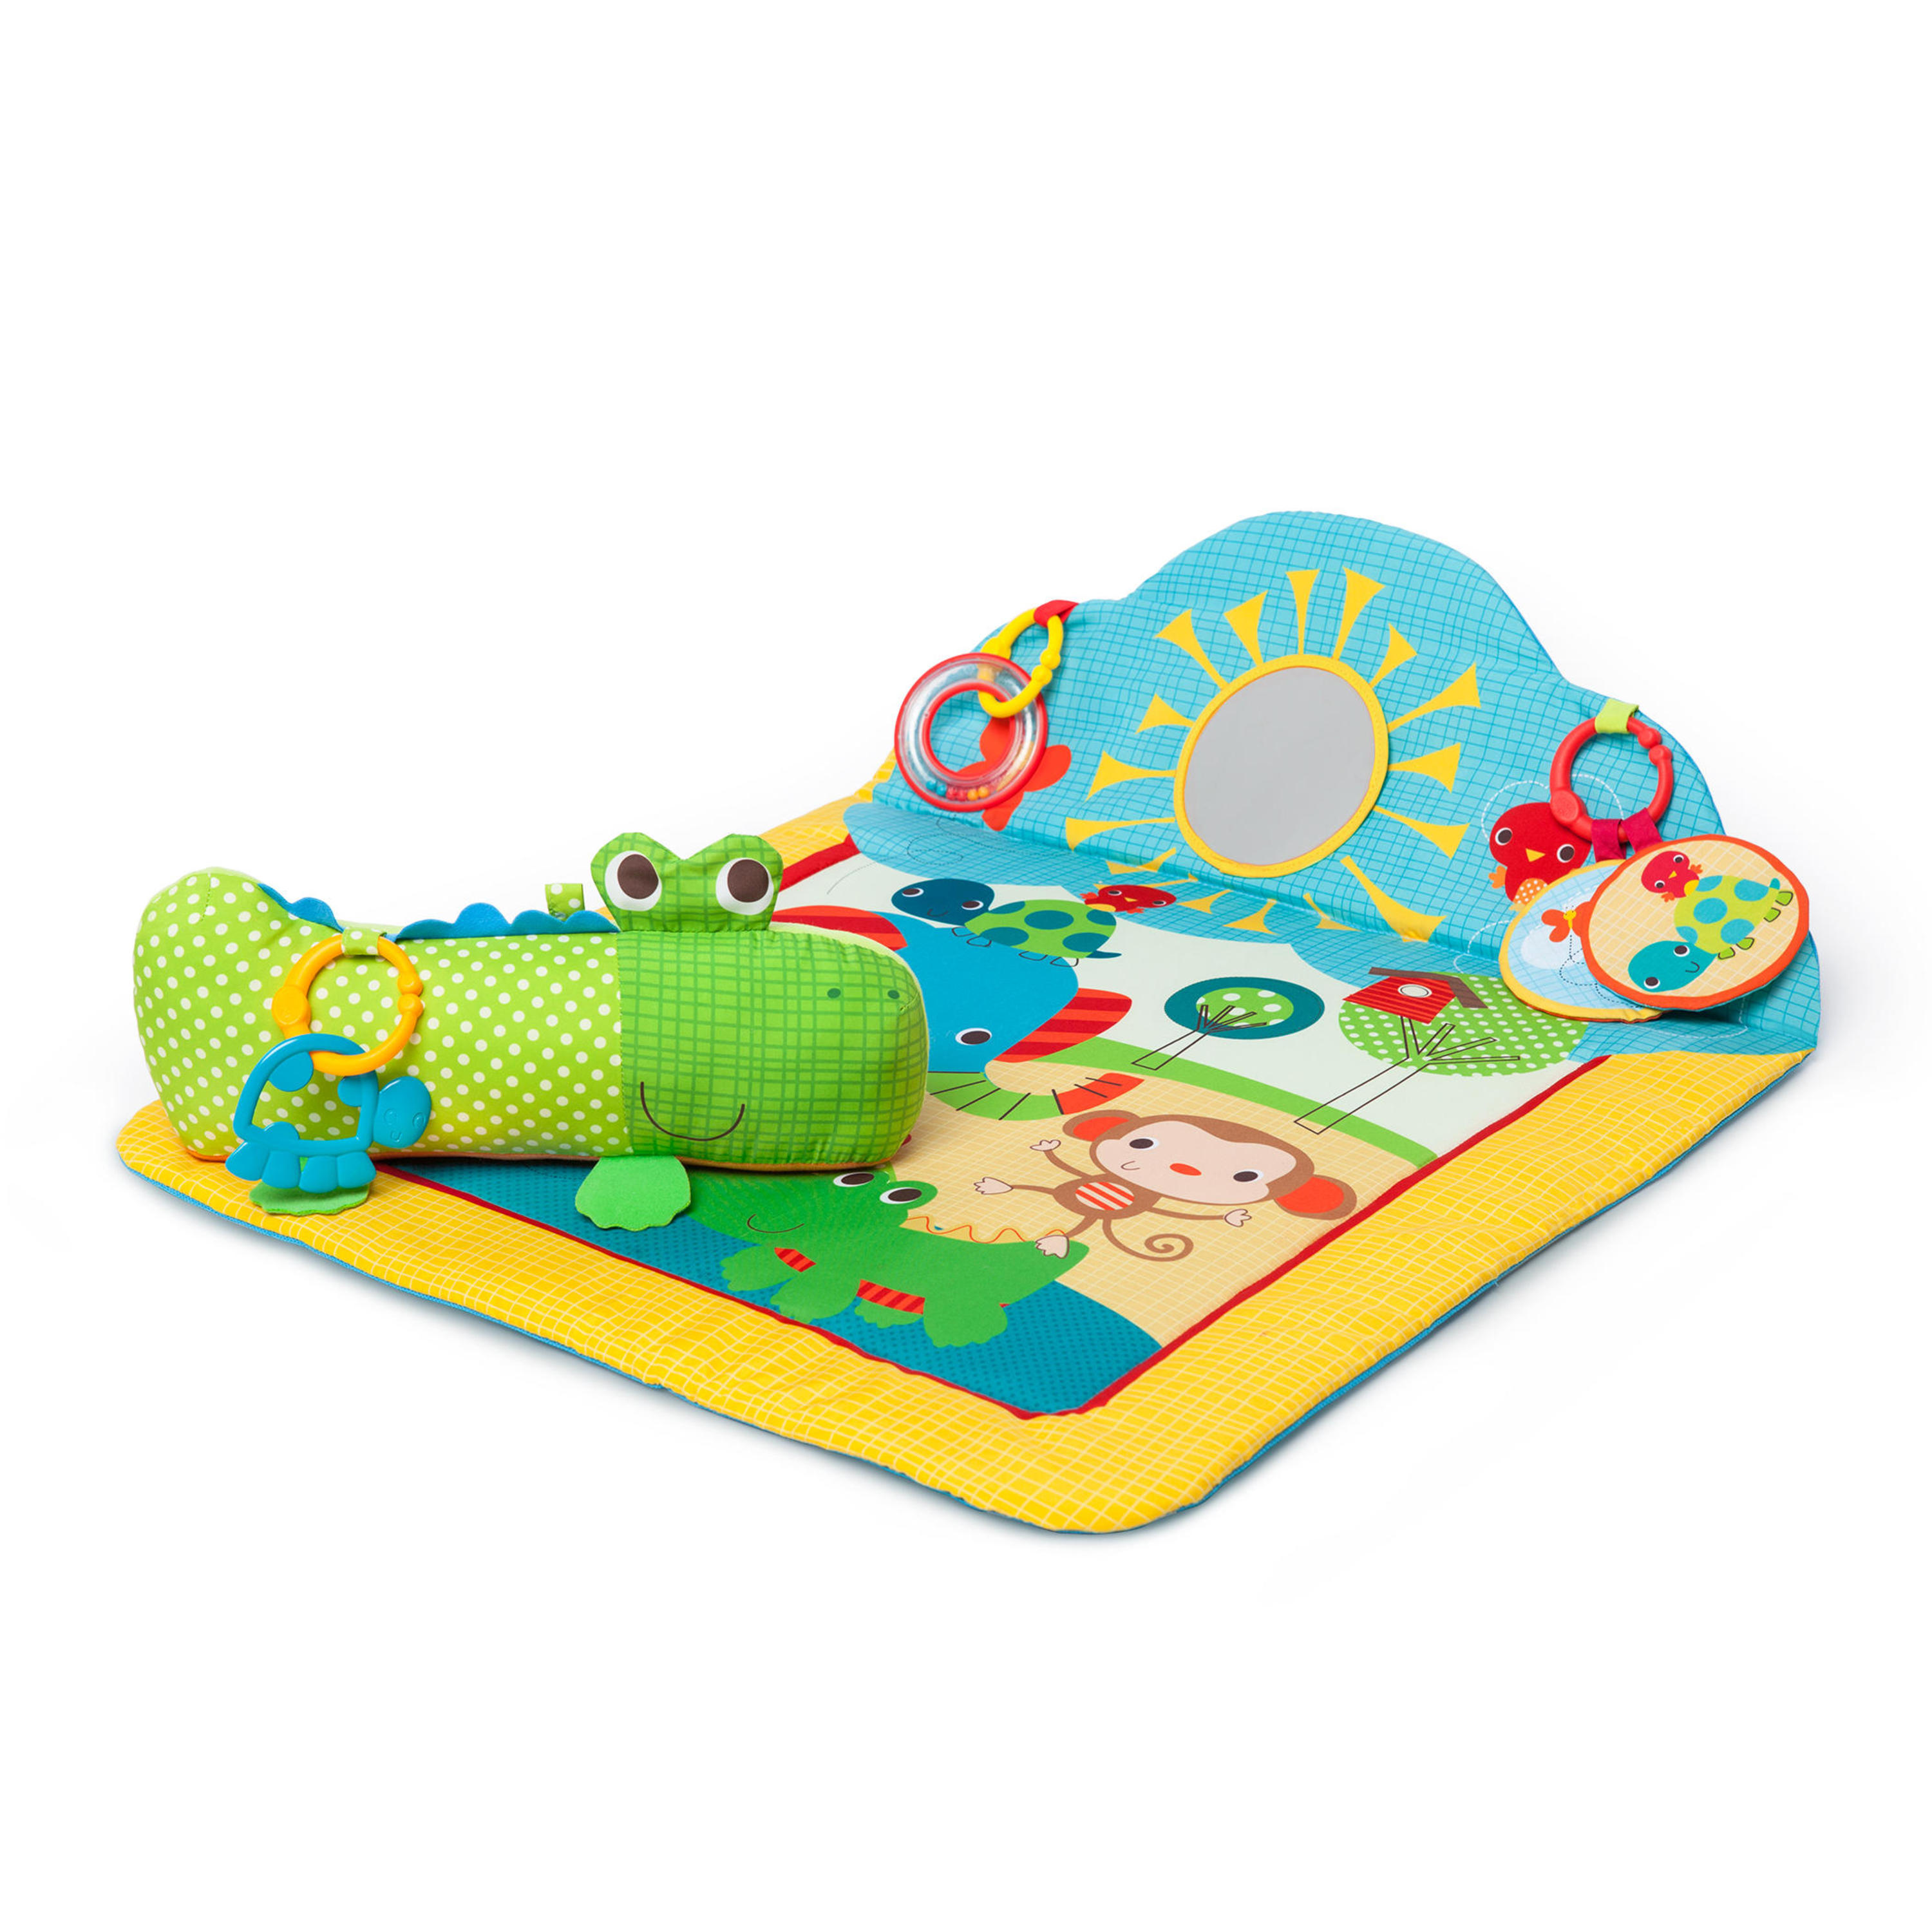 Bright Starts Cuddly Crocodile Play Mat by Bright Starts